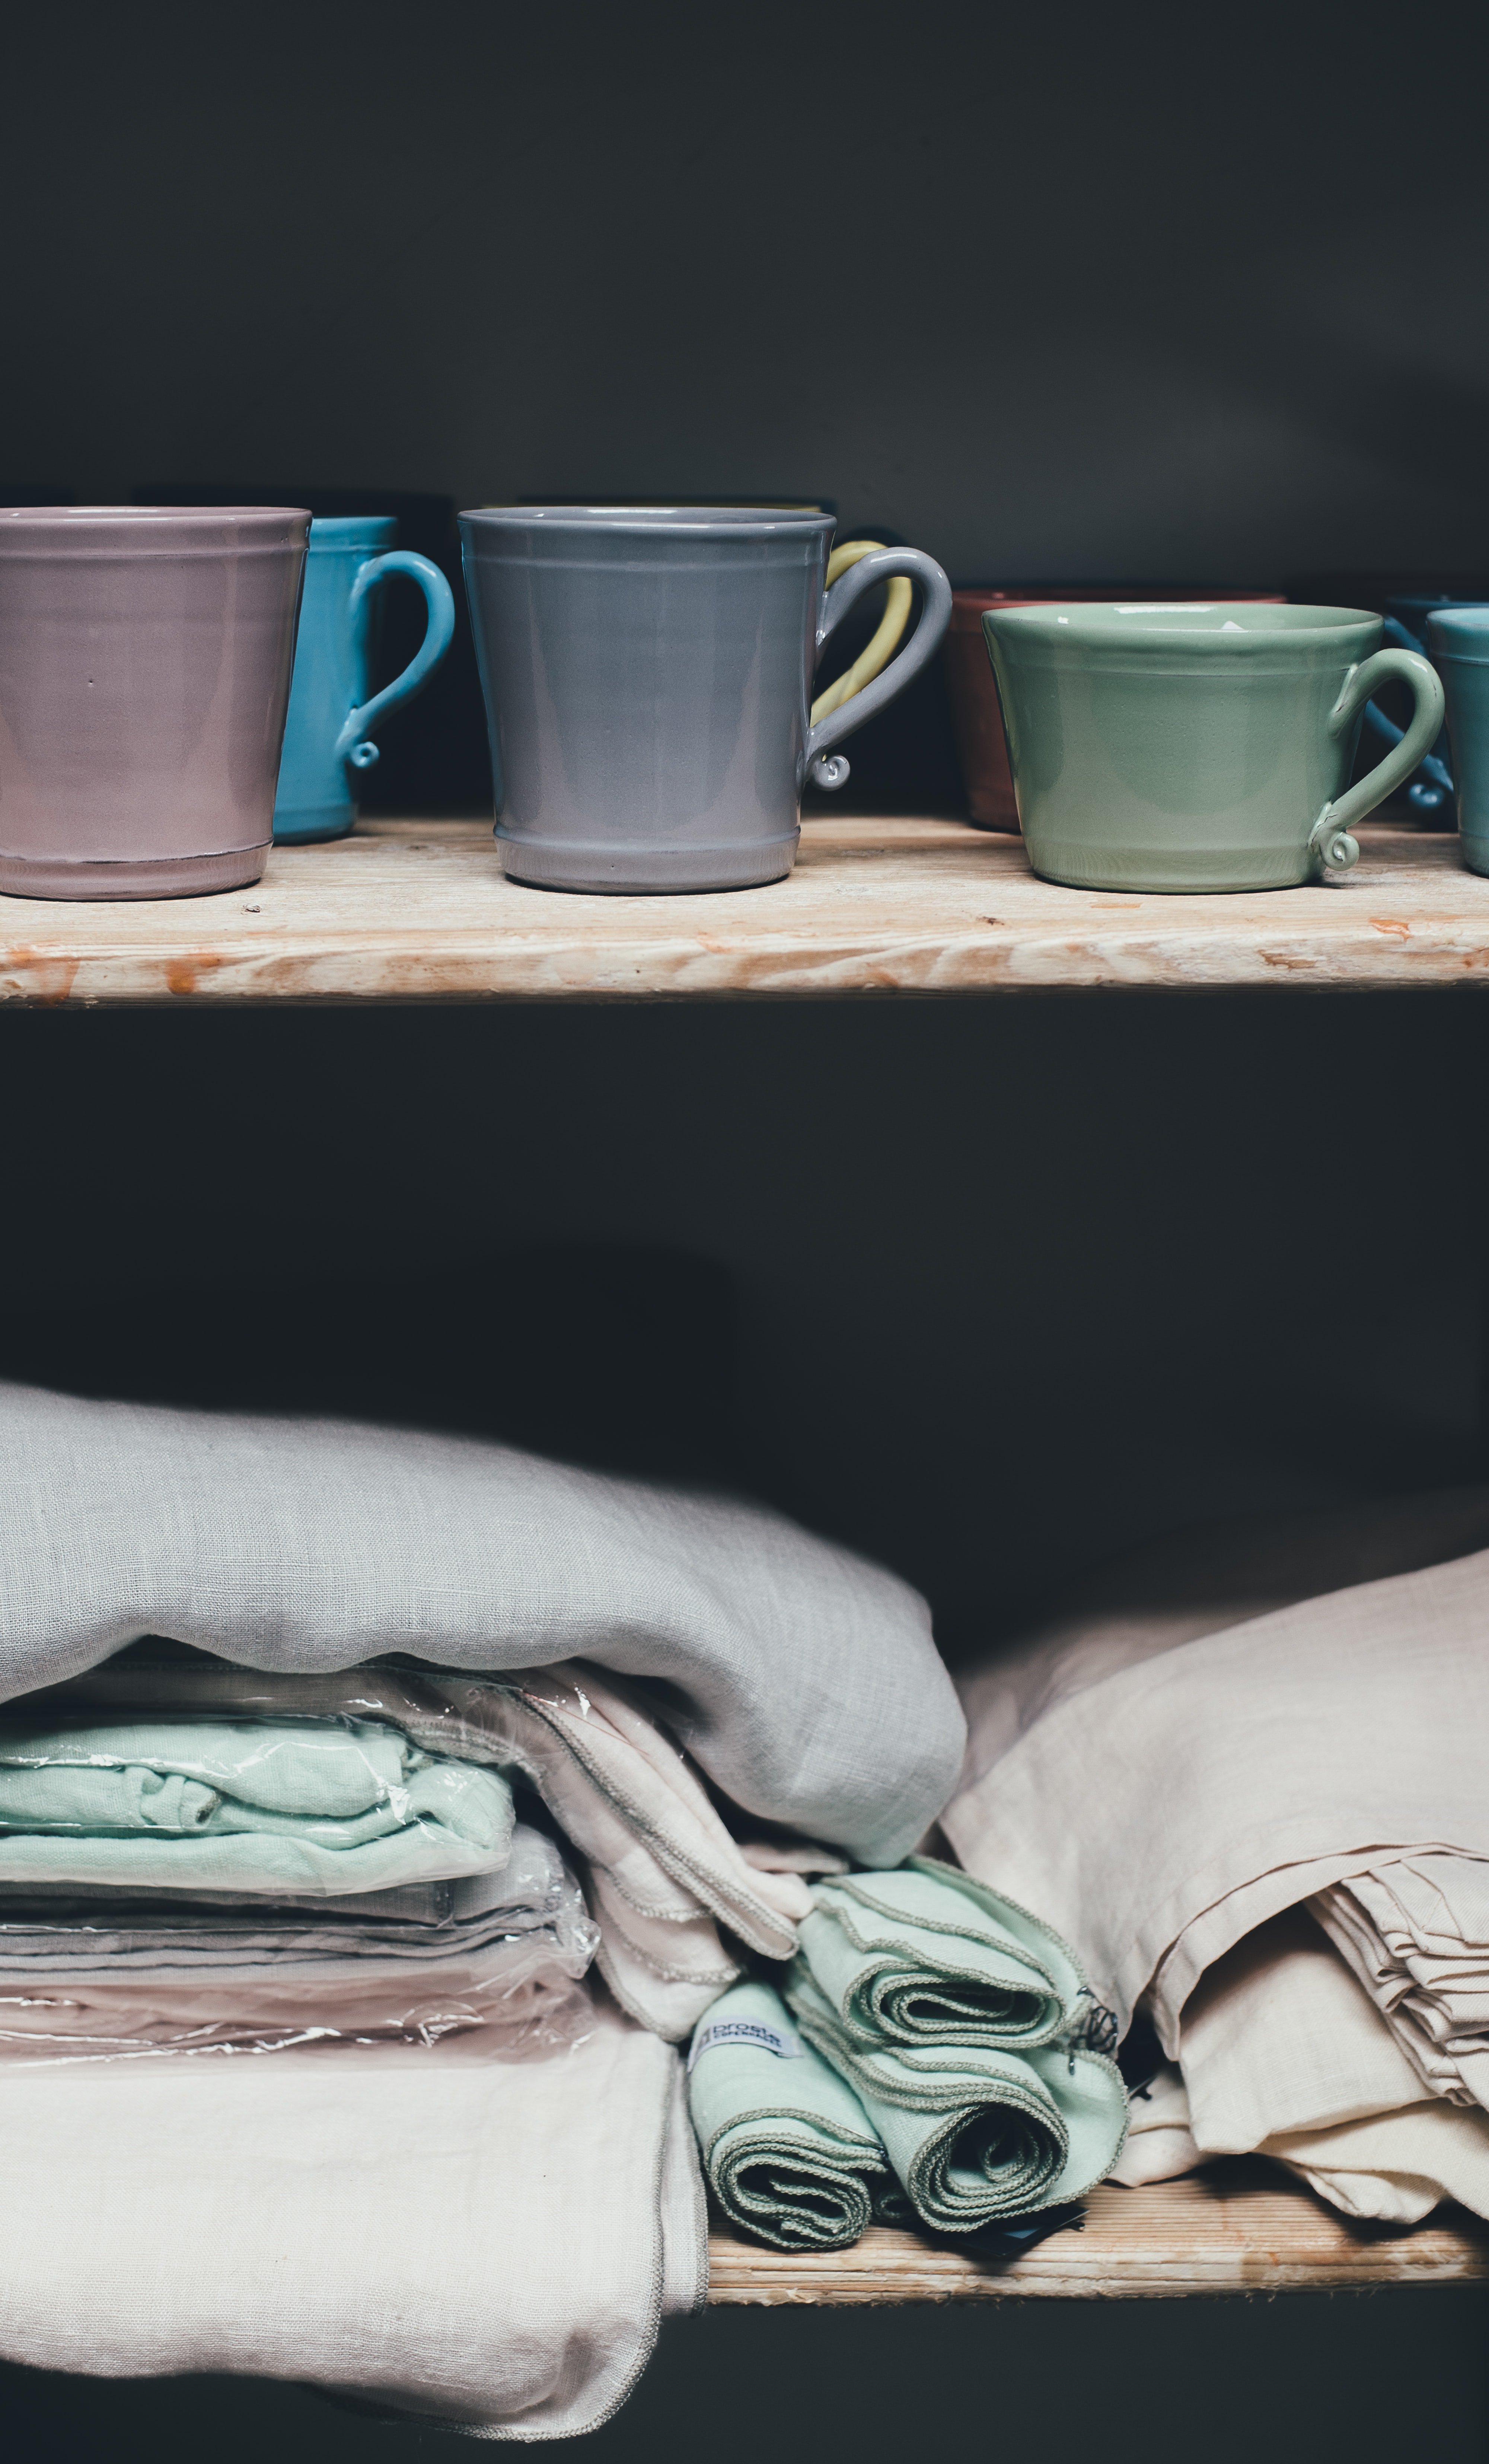 assorted-color ceramic mugs on top of shelf above piles of textile